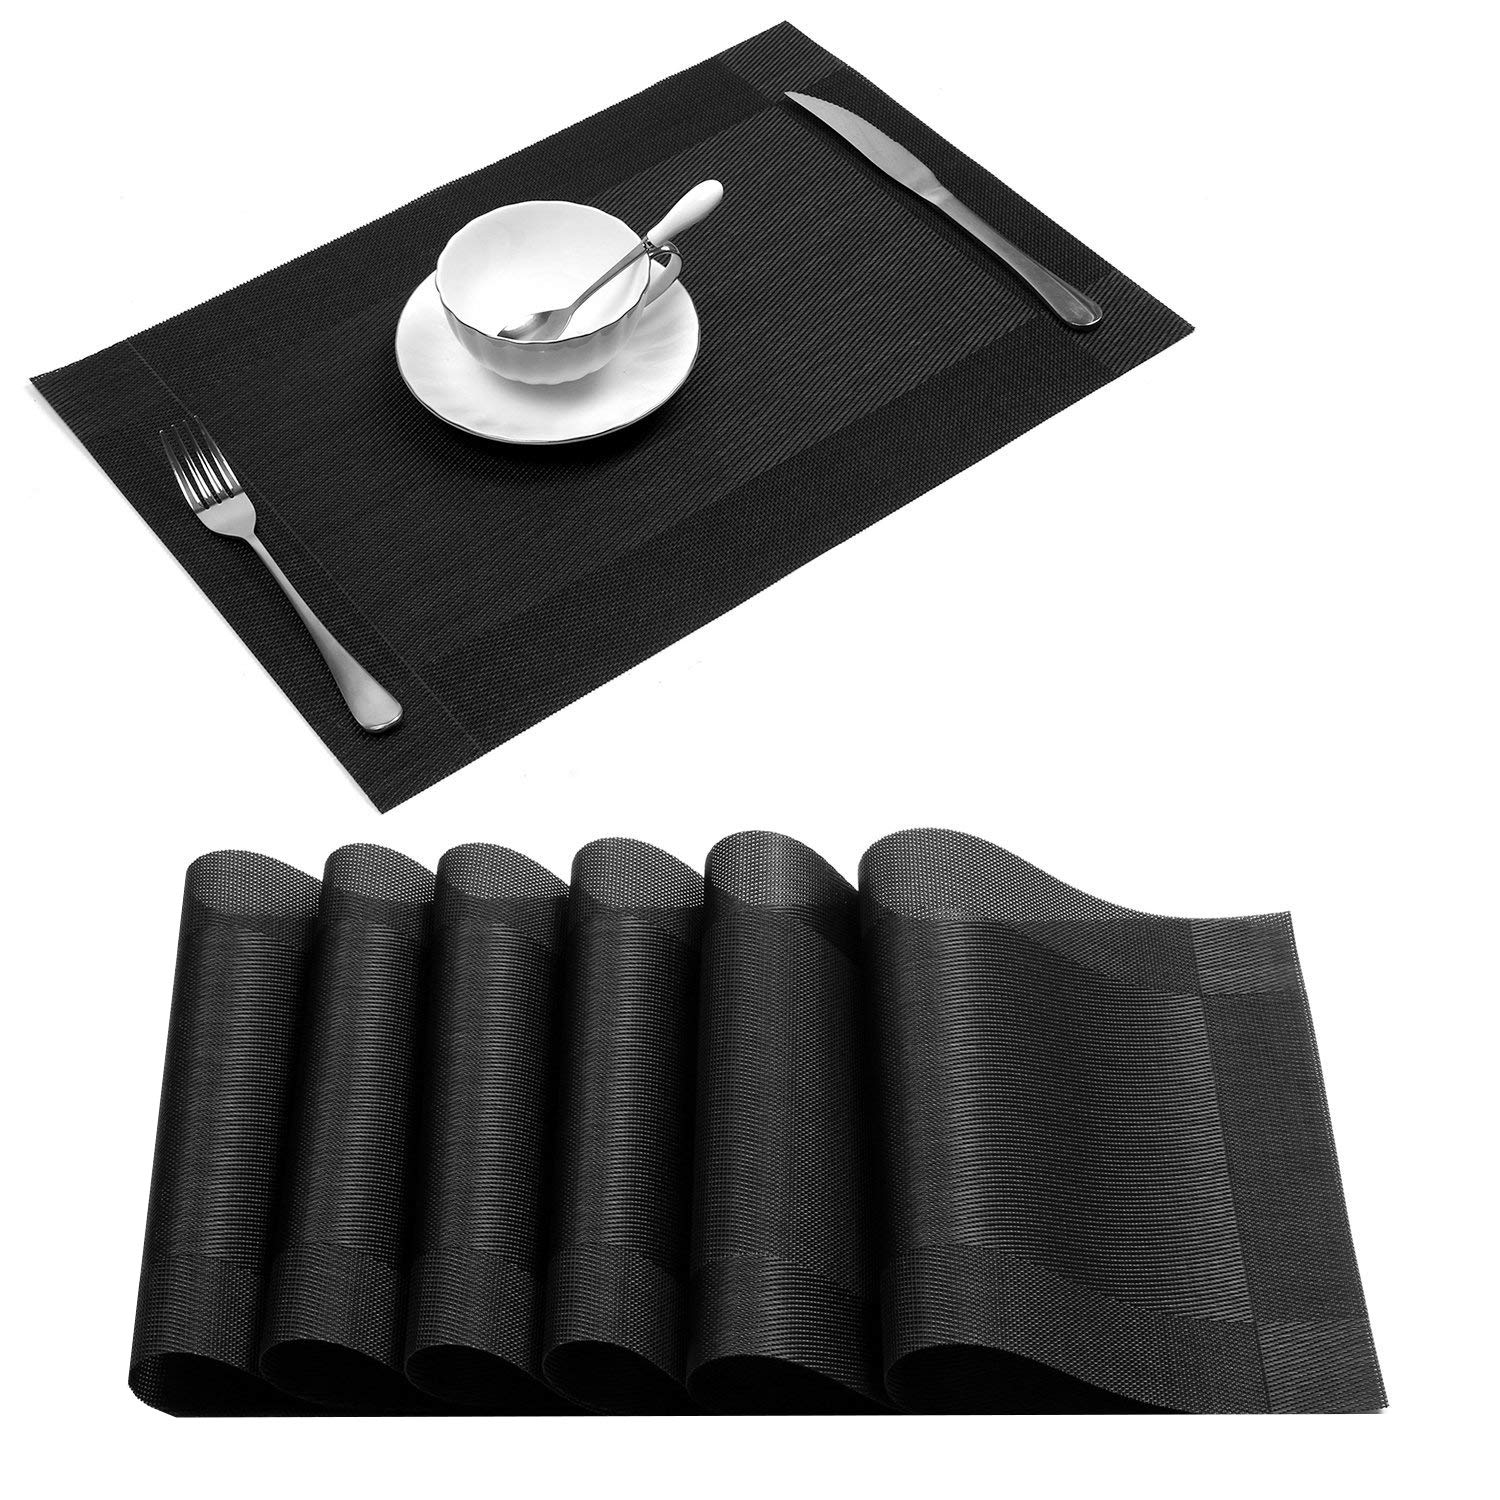 Placemat,U'Artlines Crossweave Black Woven Vinyl Non-slip Insulation Placemat Washable Table Mats Set of 6